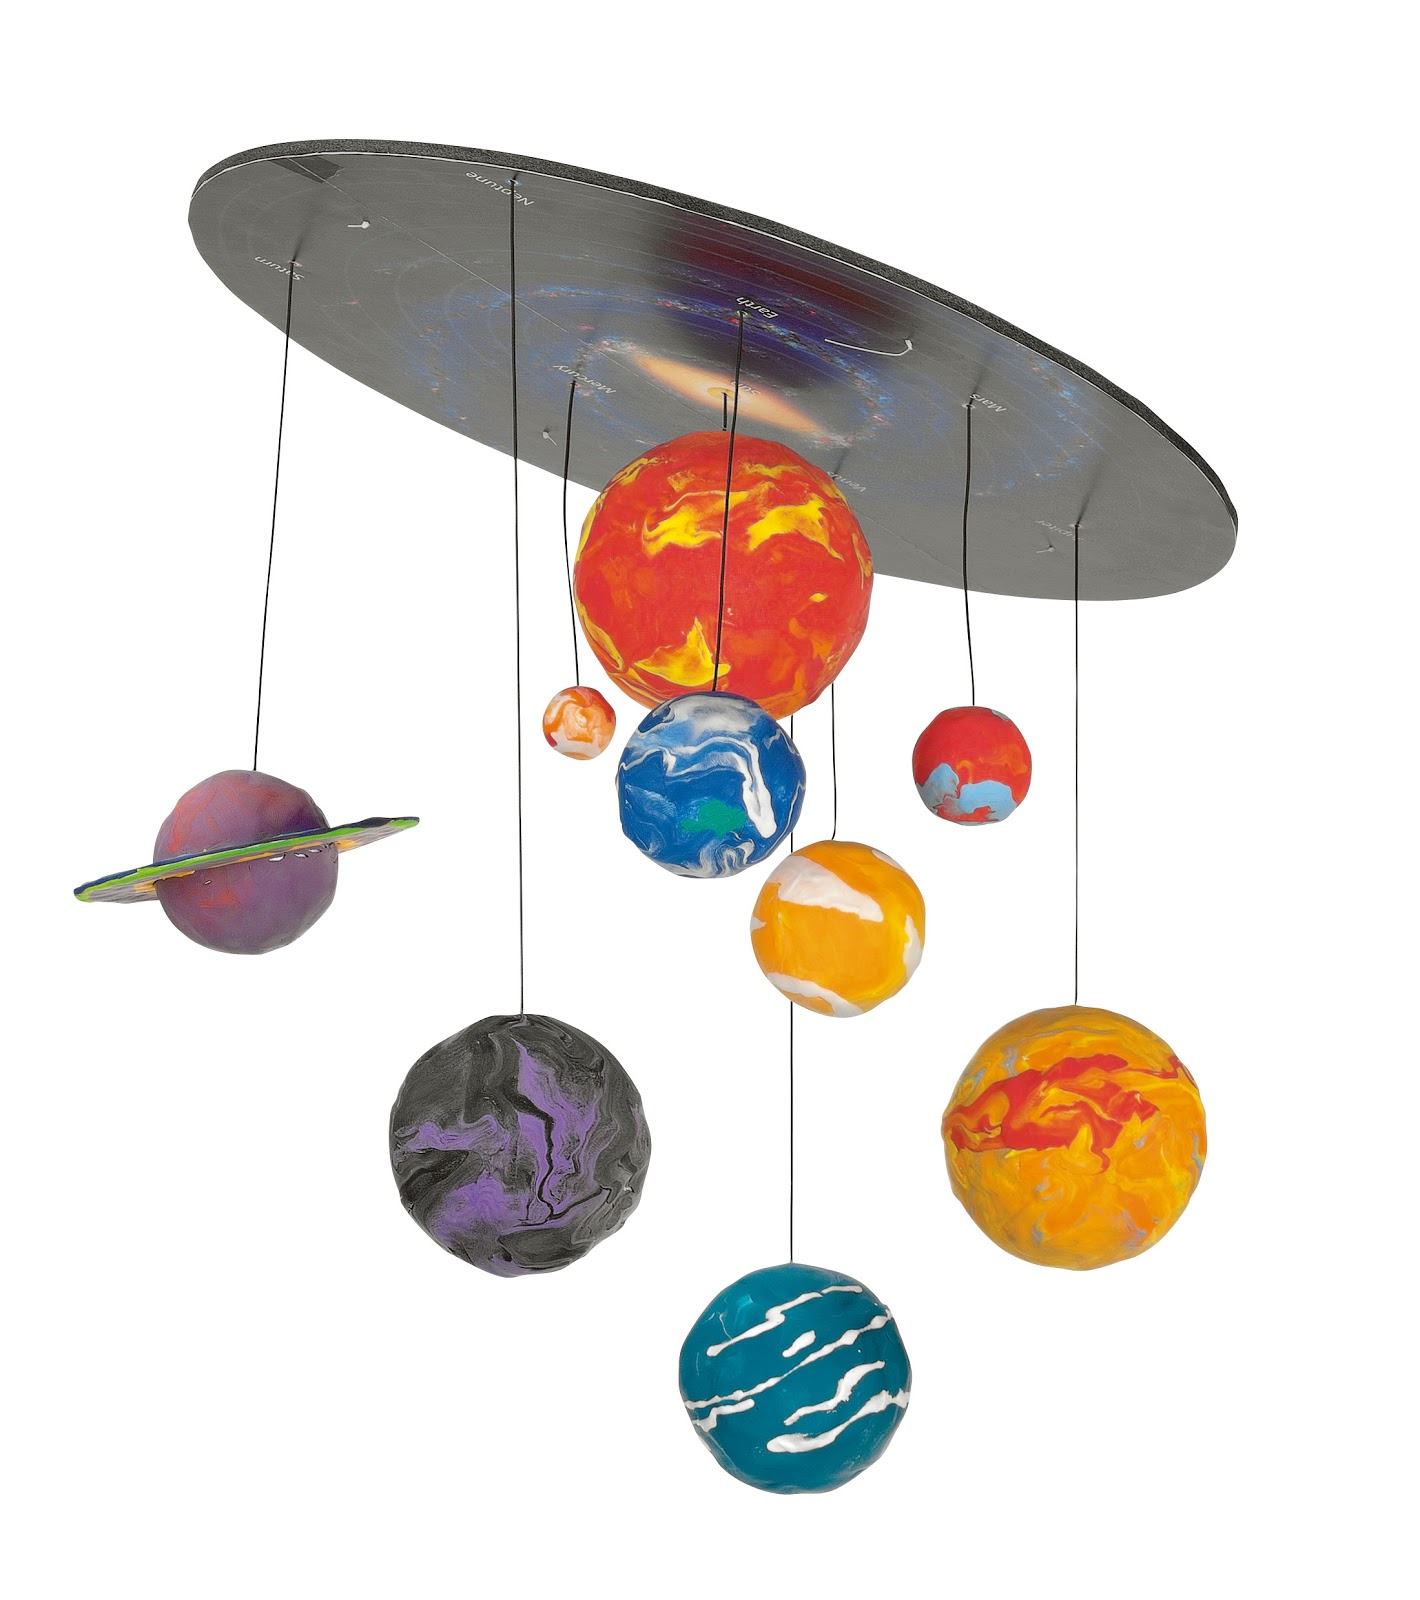 solar system project ideas - photo #32